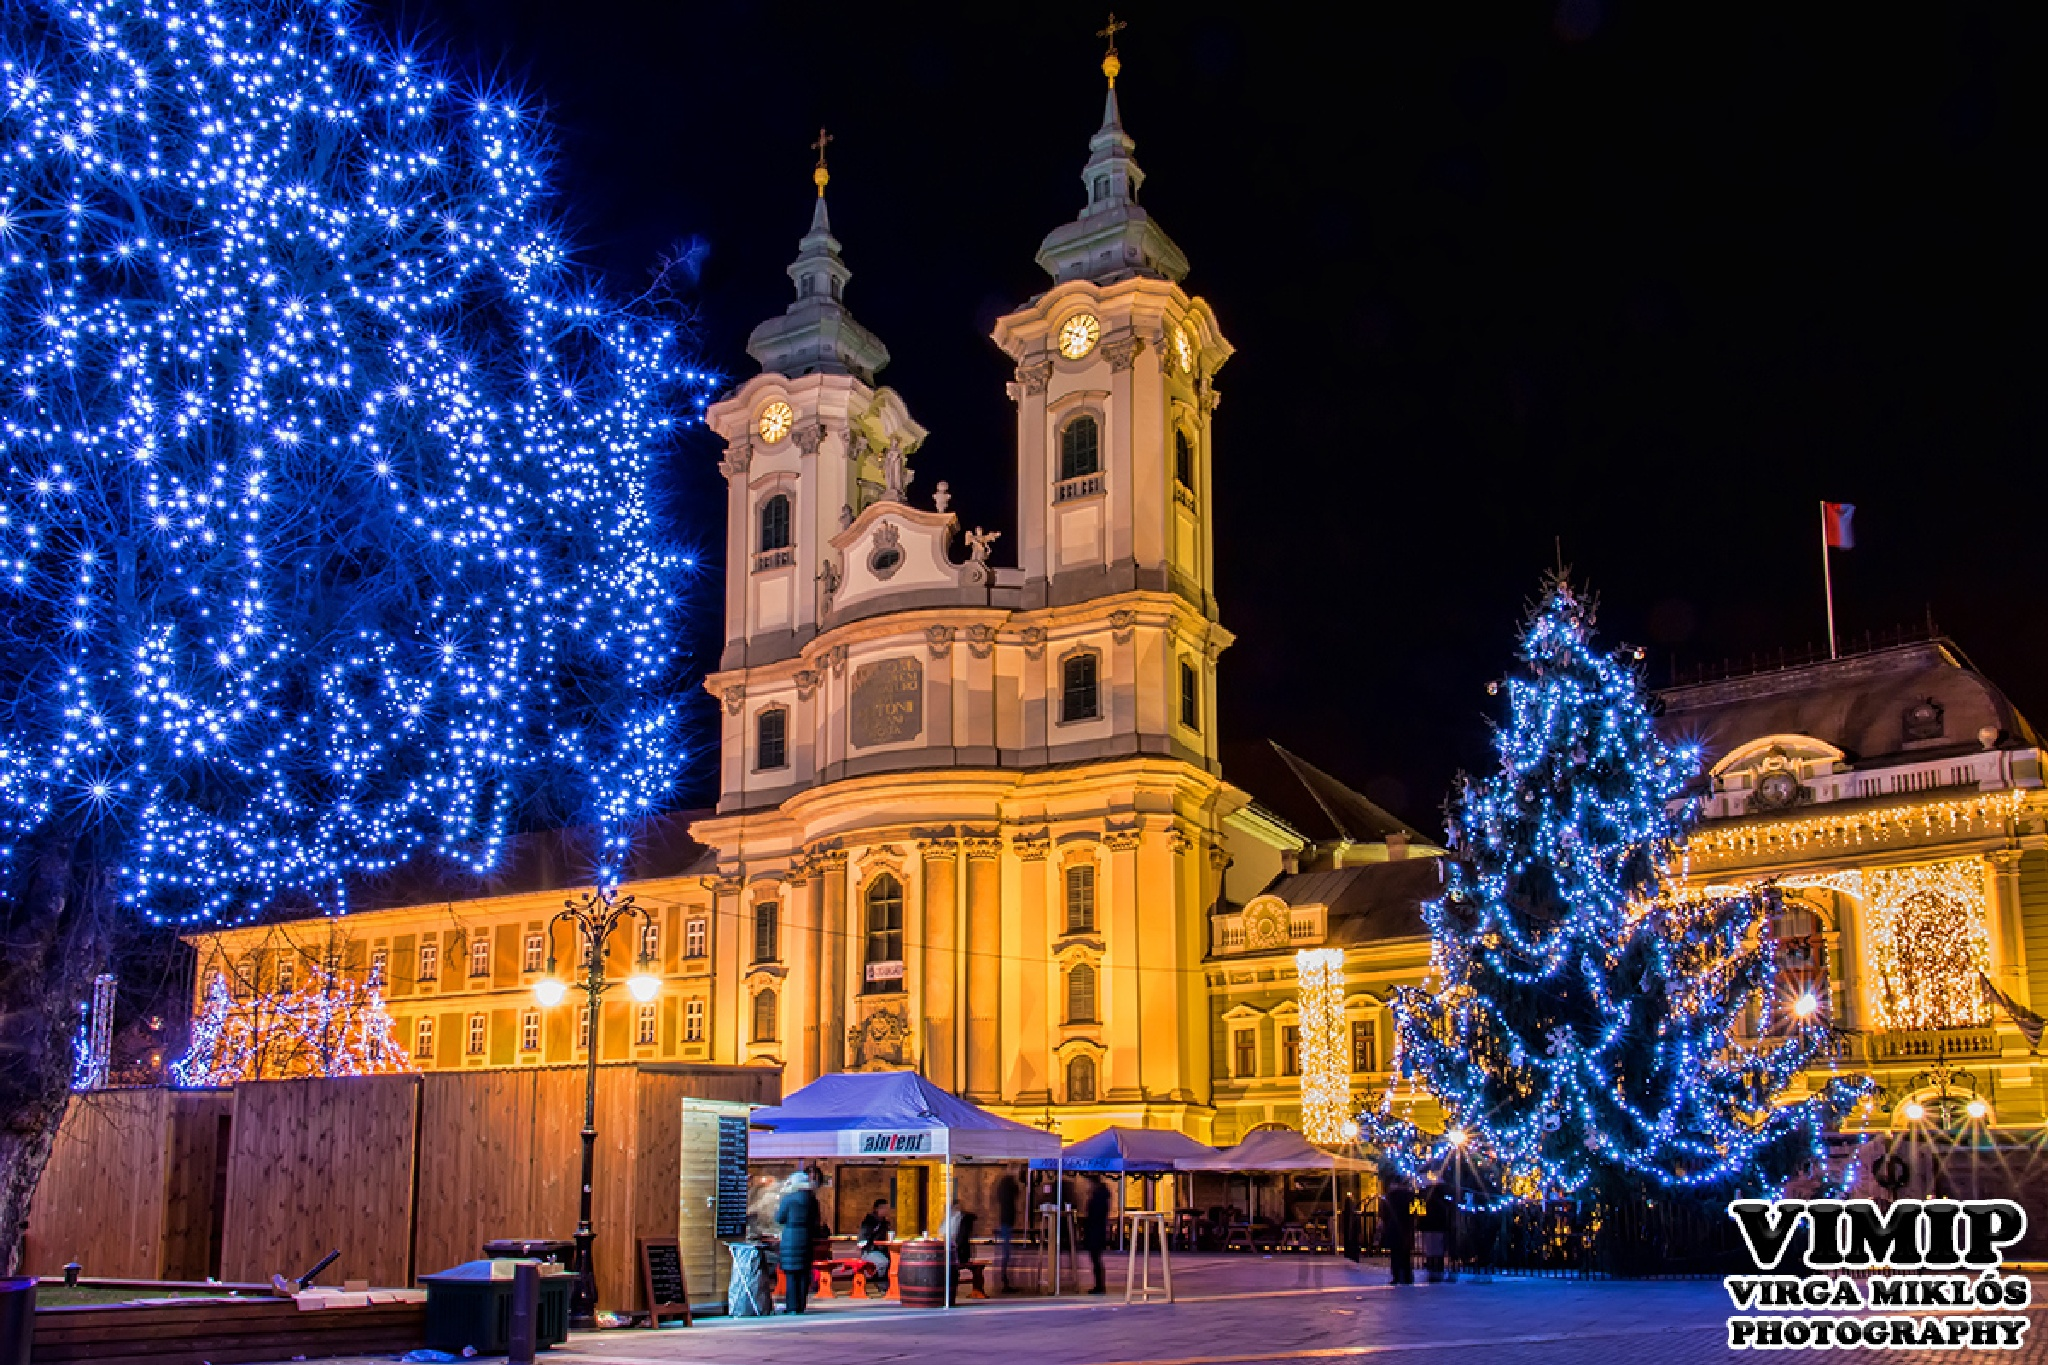 Main square of Eger in Christmas lights by VIMIP (Virga Miklos Photography)